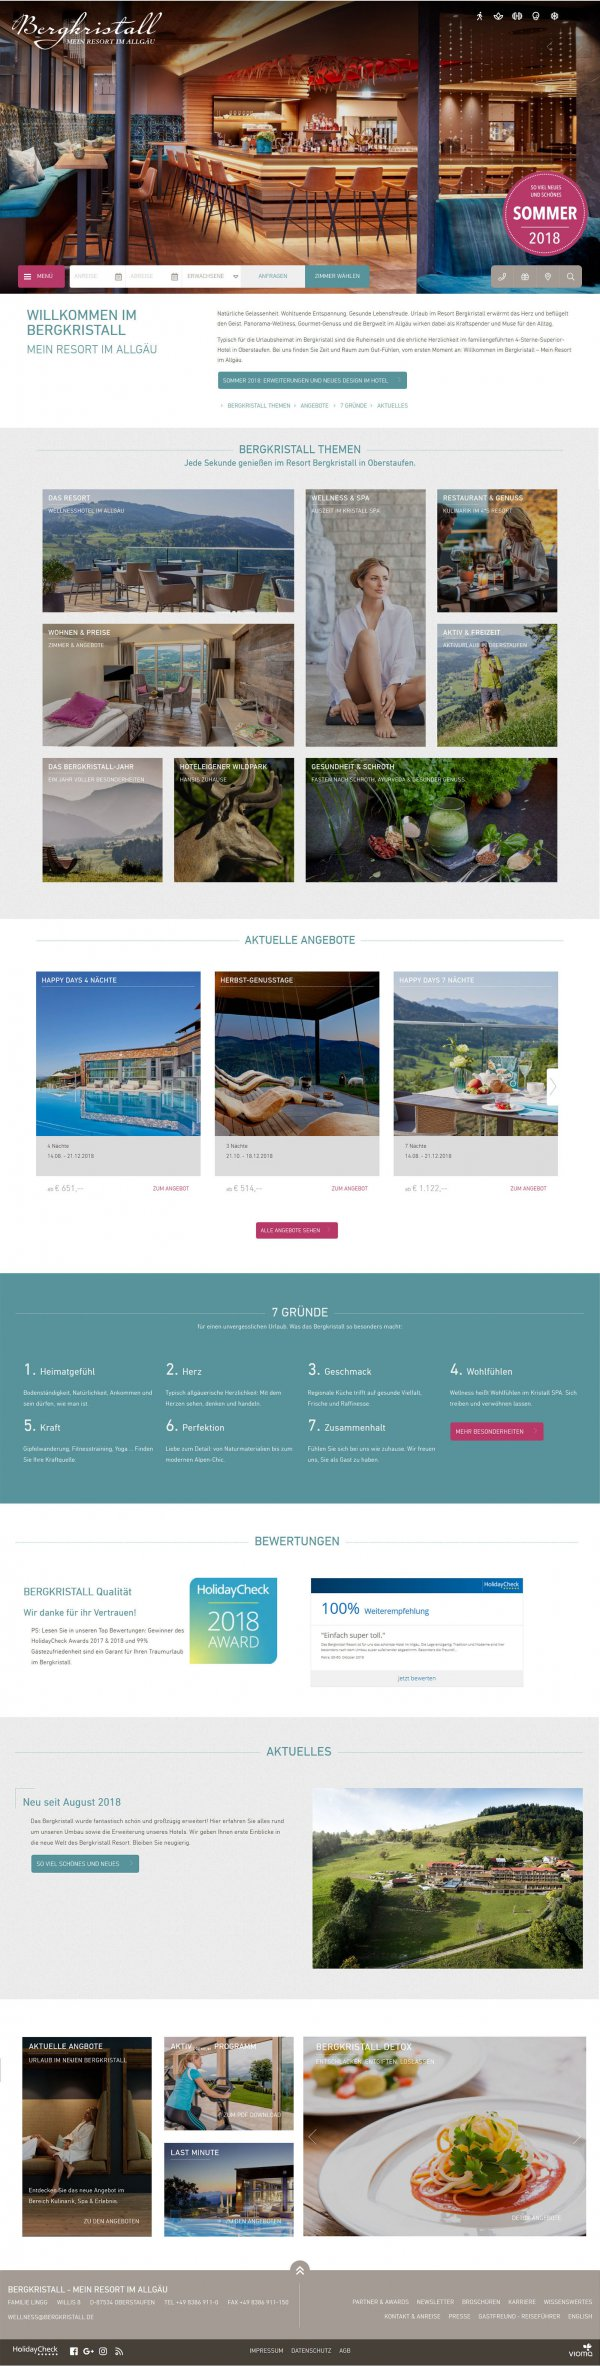 Website Hotel Bergkristall